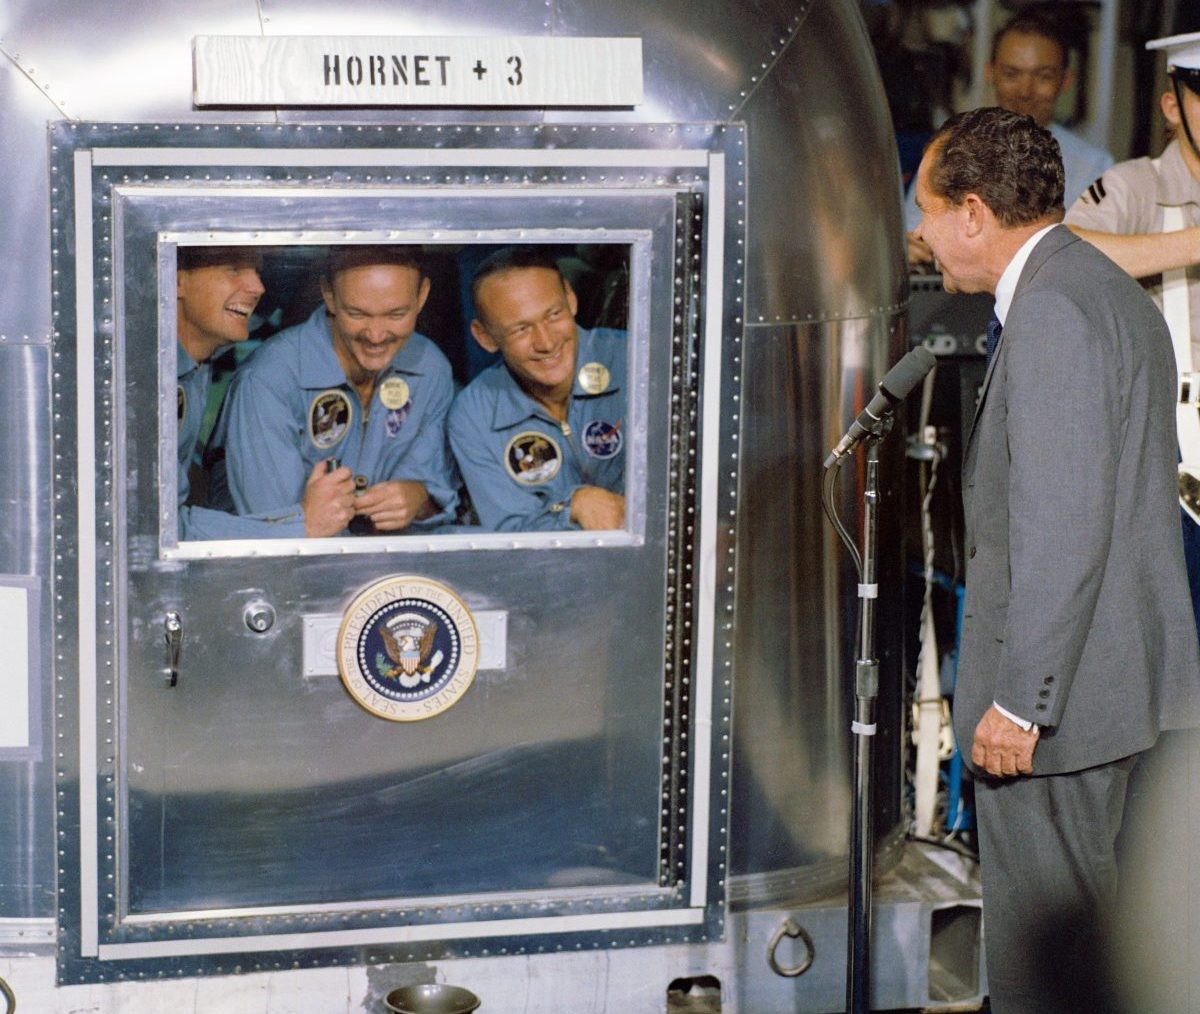 US President Richard Nixon welcomes the Apollo 11 astronauts back to Earth, aboard the USS Hornet. Here, Neil Armstrong, Michael Collins and Buzz Aldrin greet the President from the confines of their quarantine facility. Credit: NASA